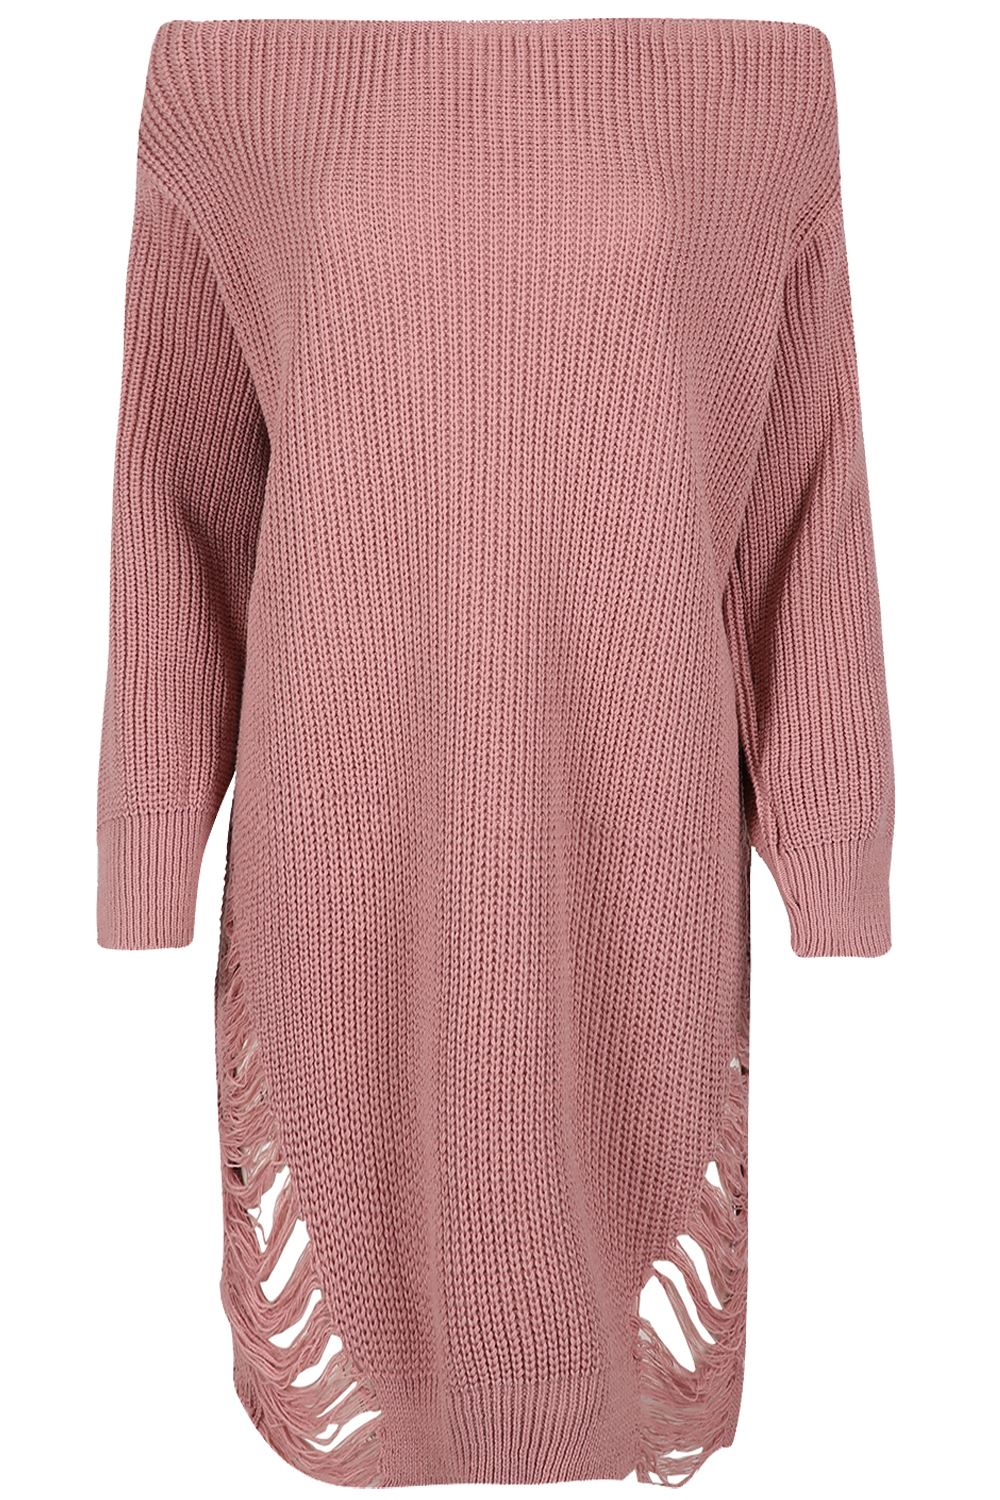 Womens-Oversized-Jumper-Ladies-Dress-Long-Sleeve-Chunky-Knitted-Long-Sweater-Top thumbnail 31